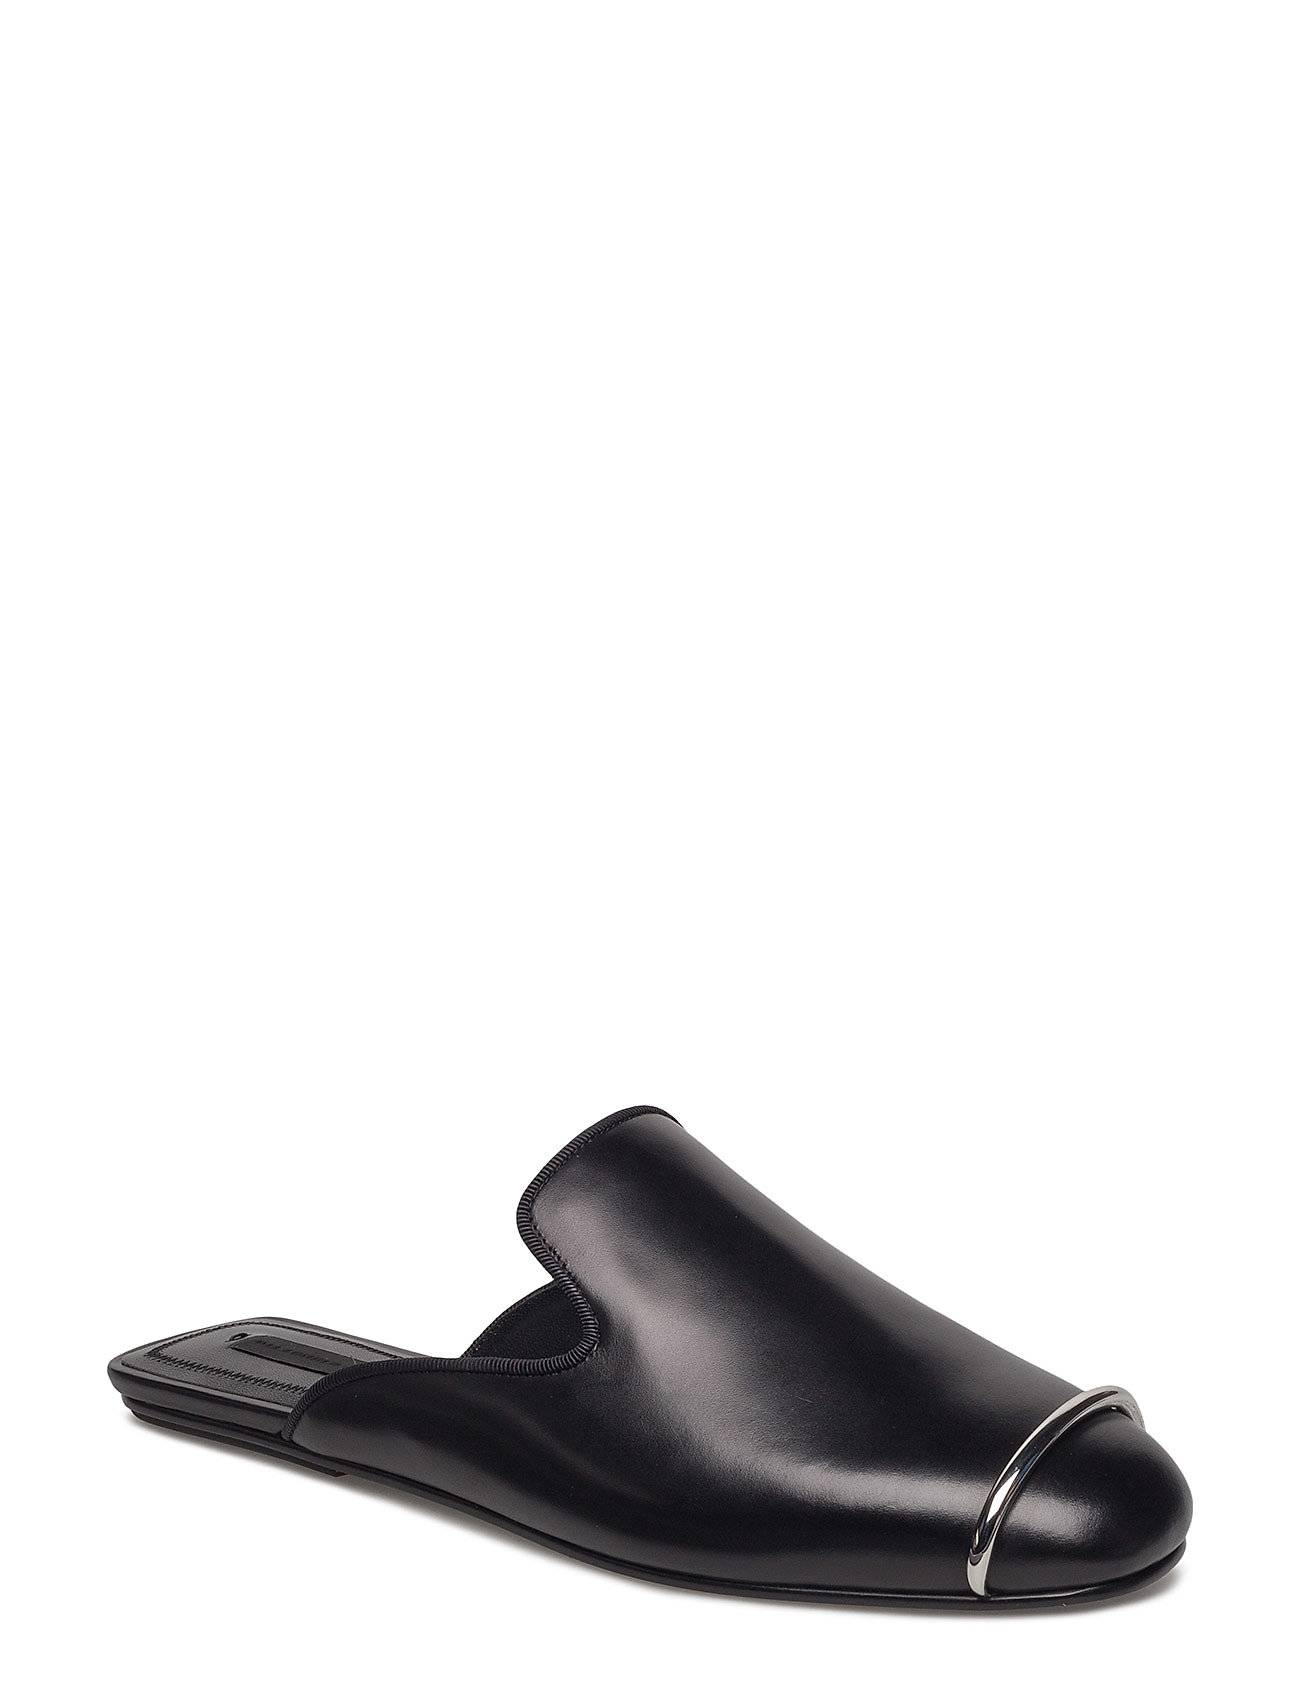 Alexander Wang Jaelle Black Soft Calf